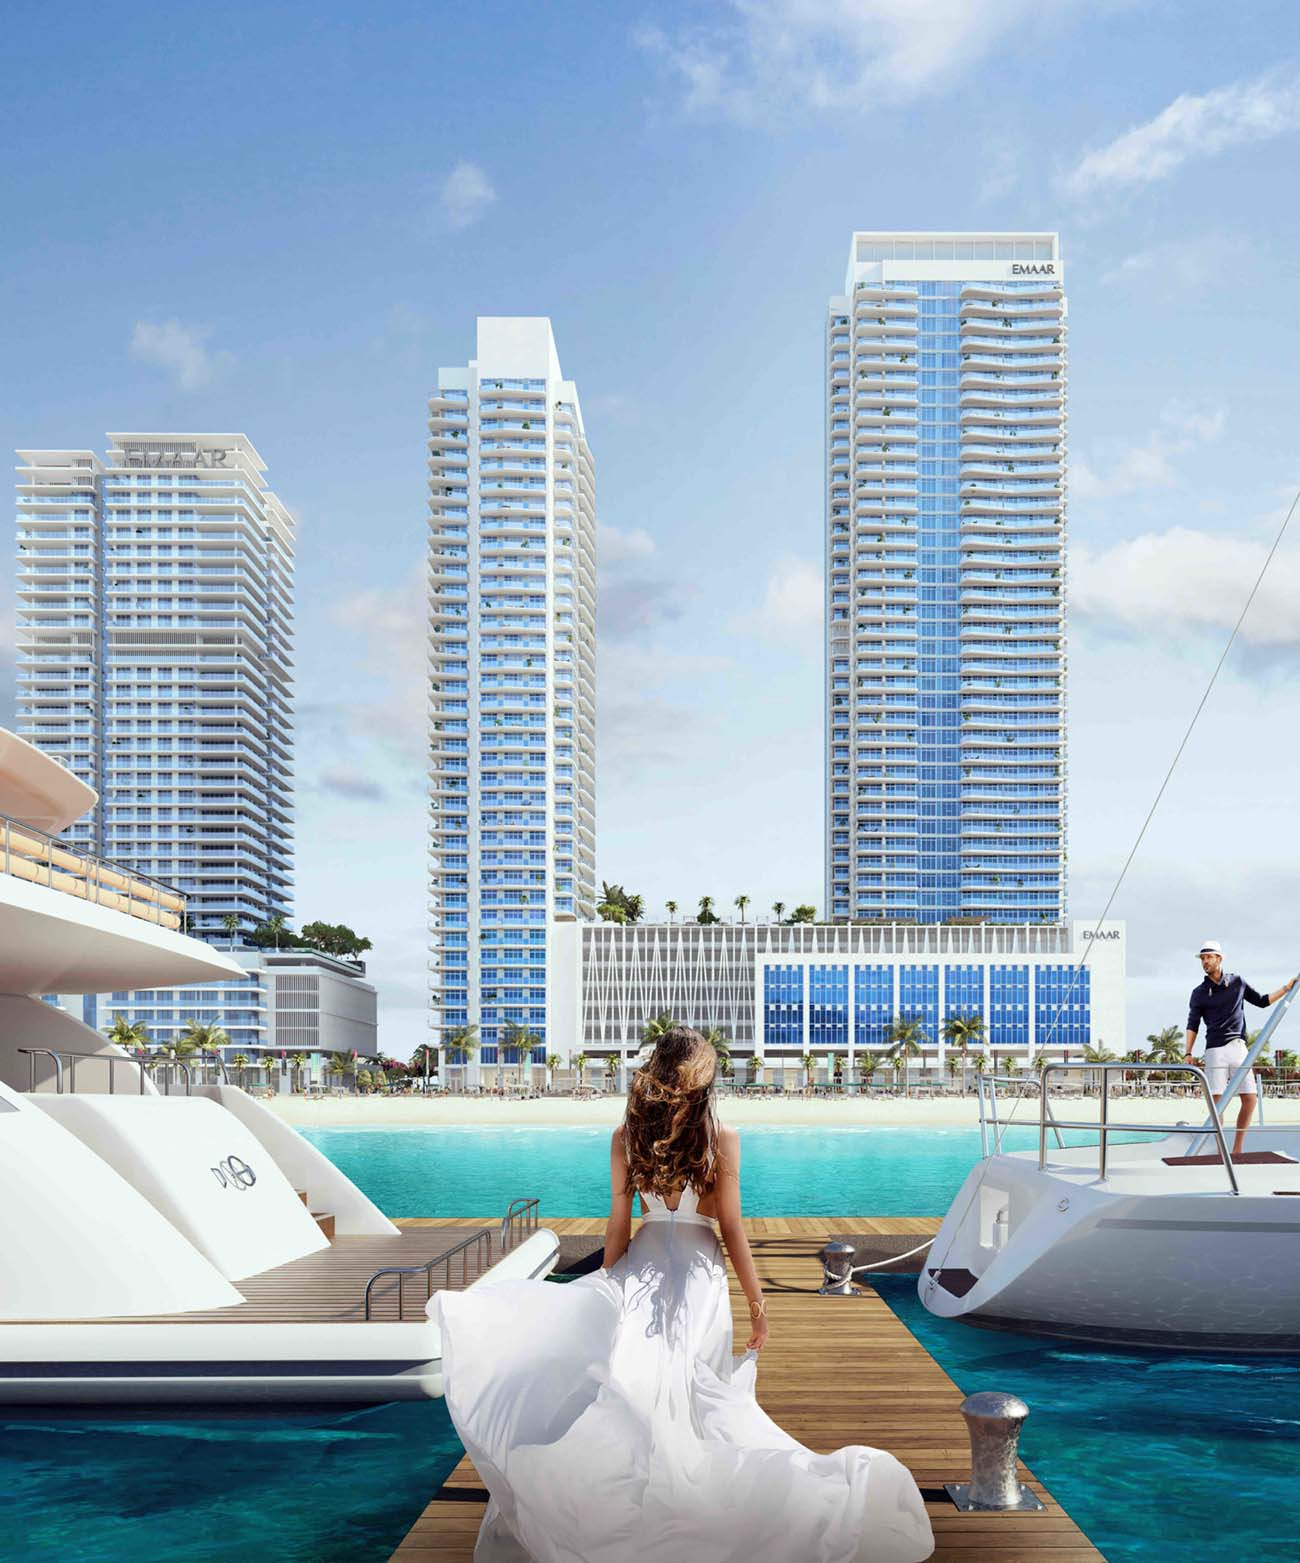 Emaar Beachfront South Beach Apartments for Sale in Dubai